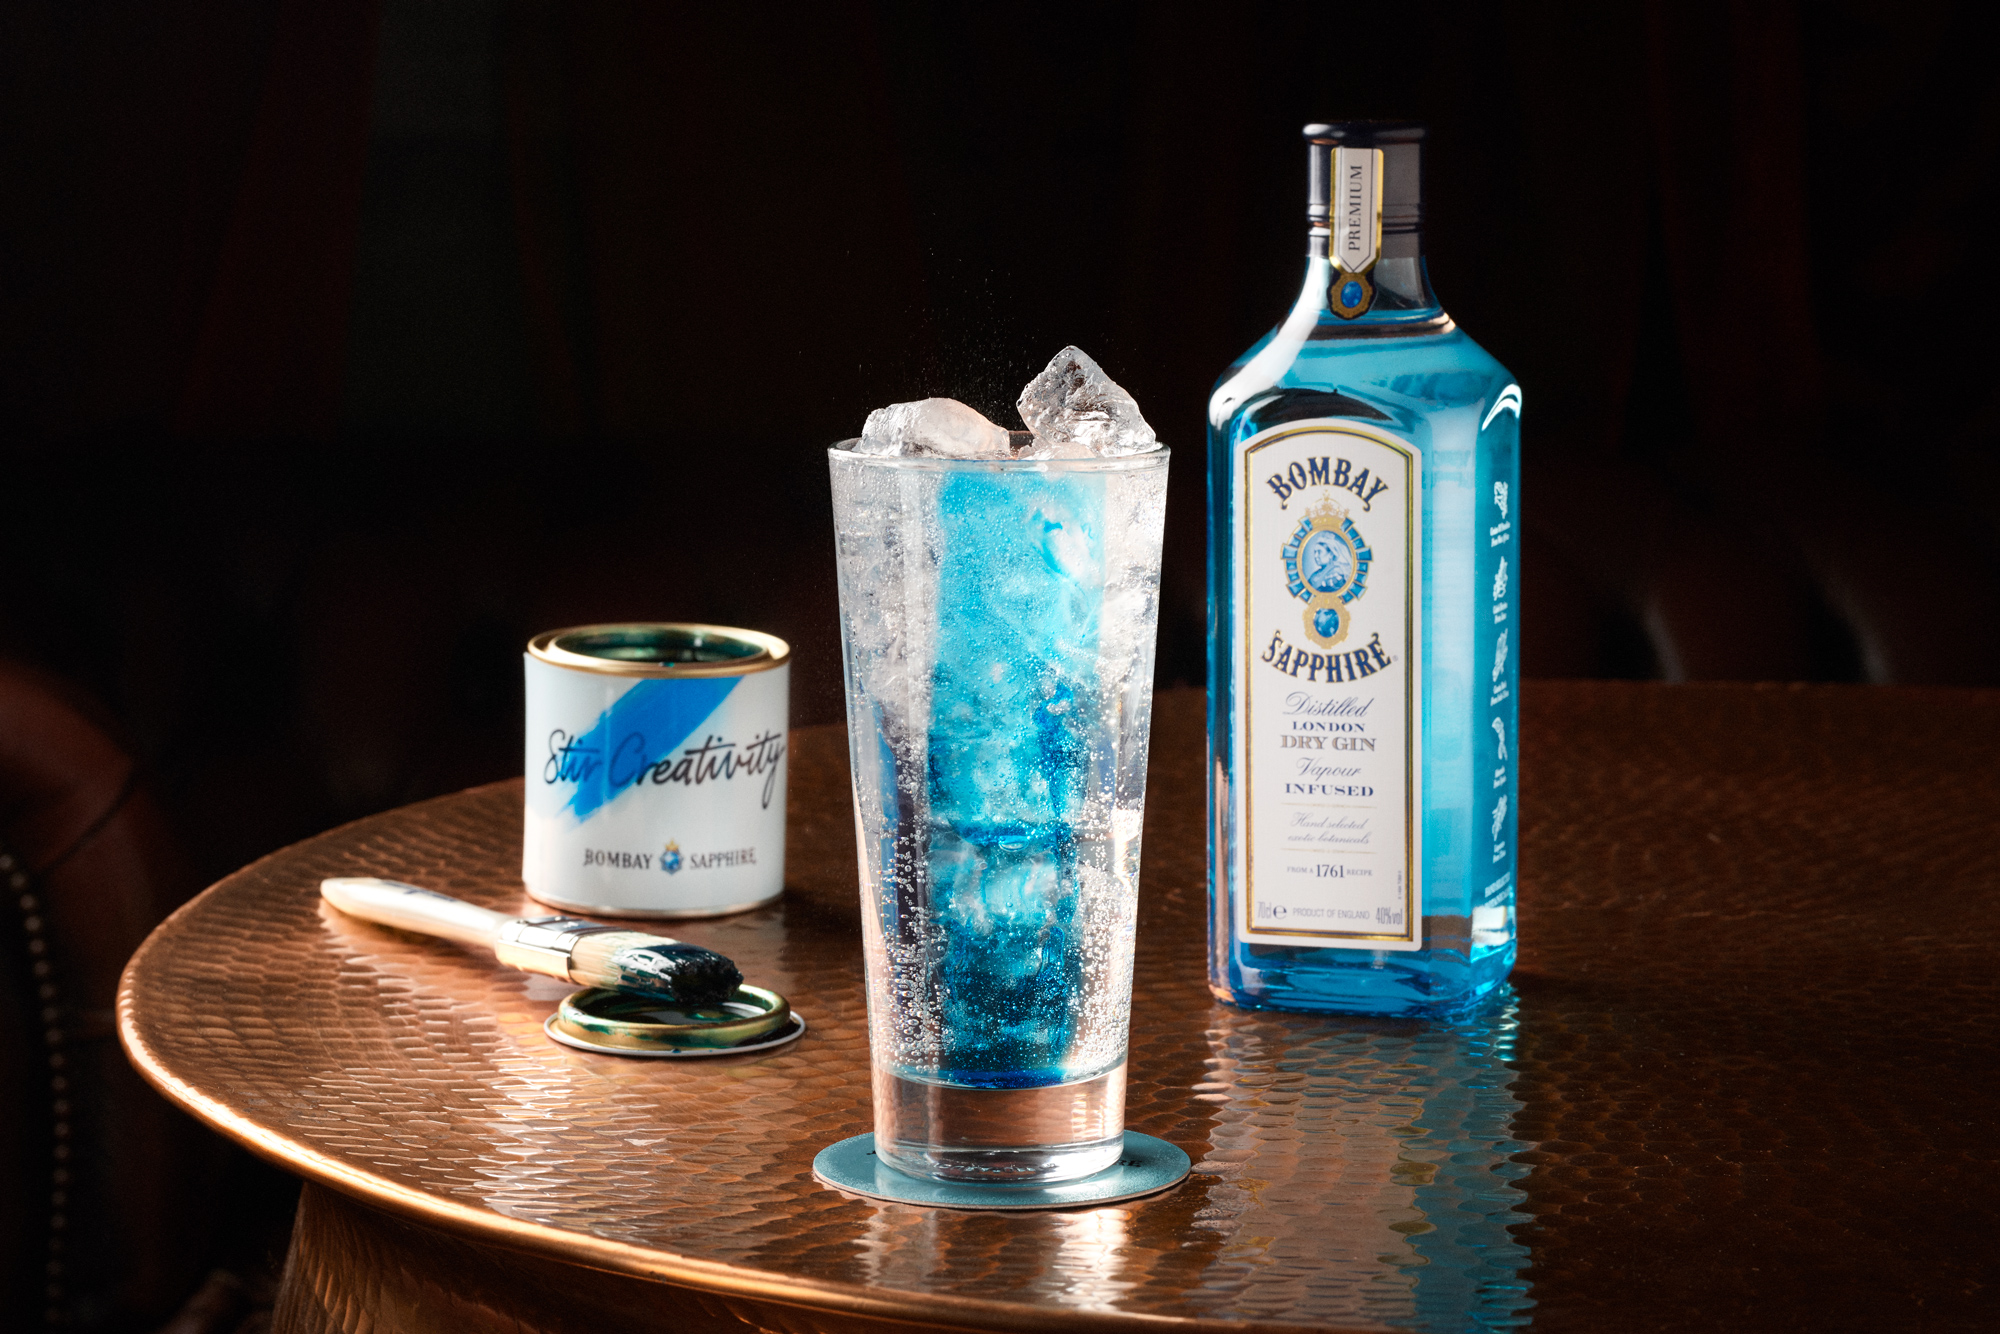 Bombay Sapphire to paint the town blue this Summer with new campaign via Crave Global